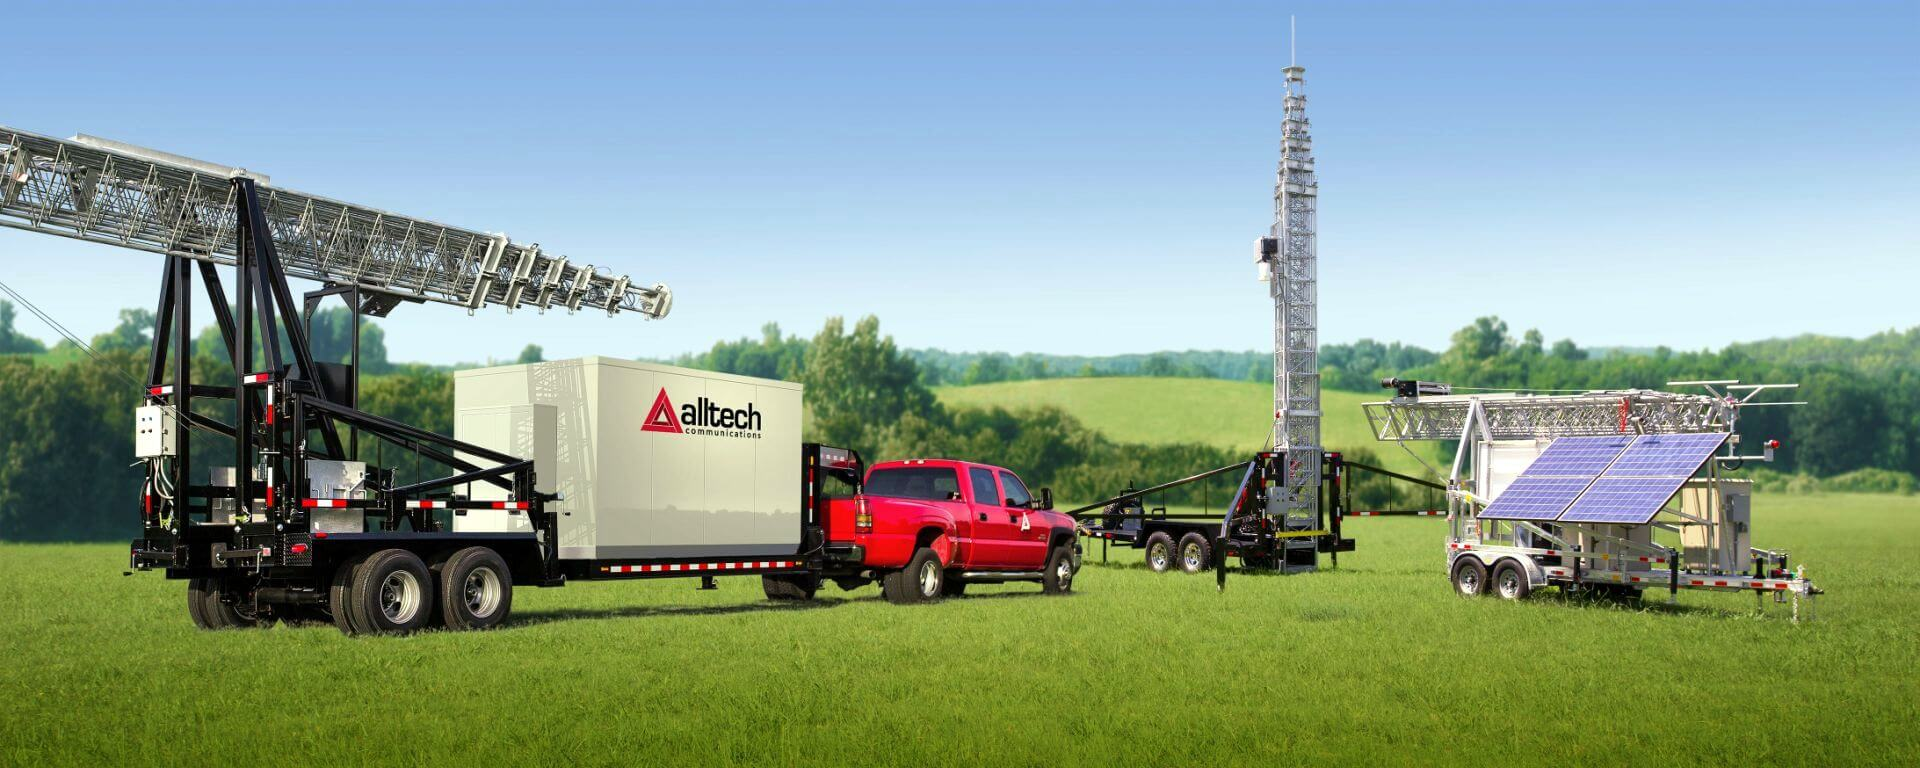 1920×768-AllTech-Communications-Cell-on-Wheels-Telescopic-Tower-Trailer-amp-Telecom-Shelter-Manufacturing-Company Home